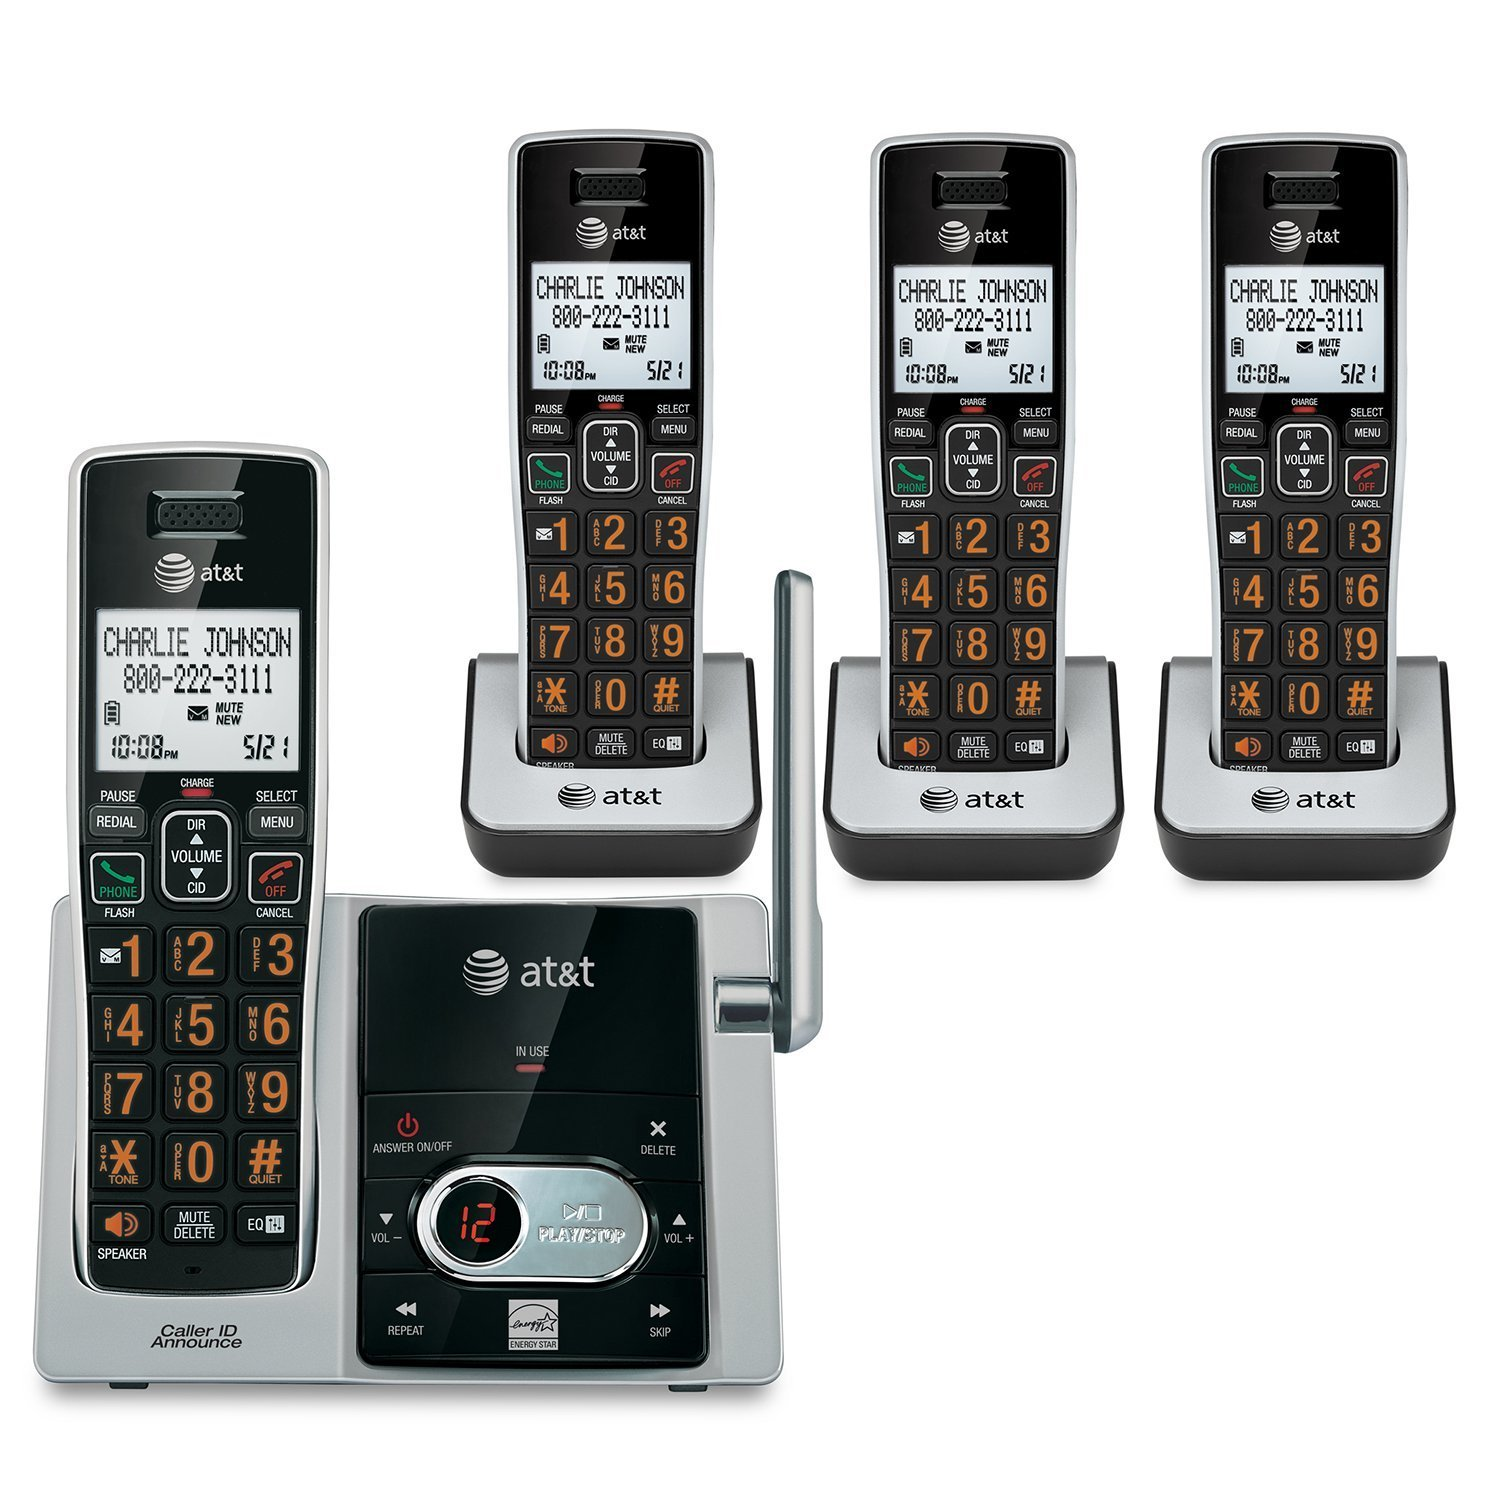 AT&T CL82413 4-Handset Cordless Phone with Answering System, Black